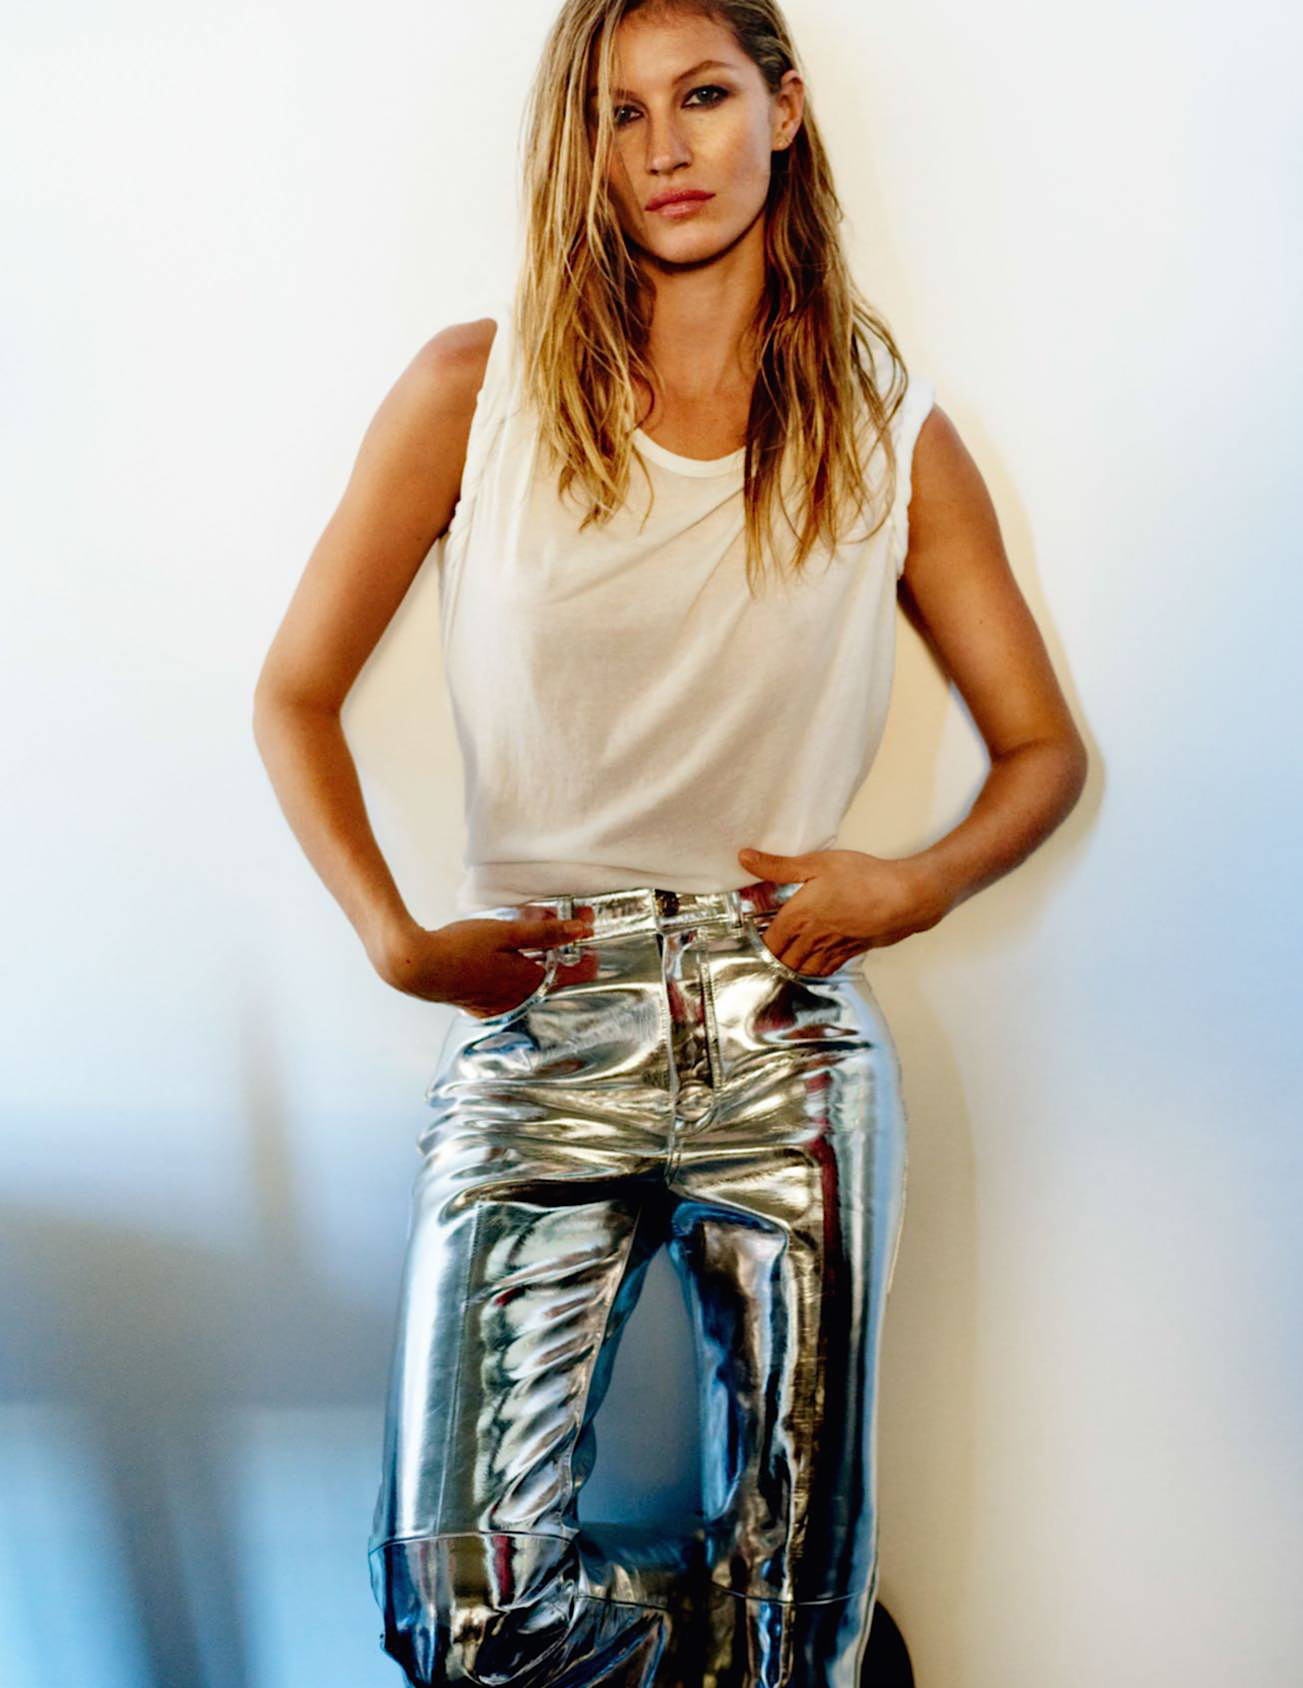 Gisele Bündchen by Mario Testino for Vogue Paris, October 2015